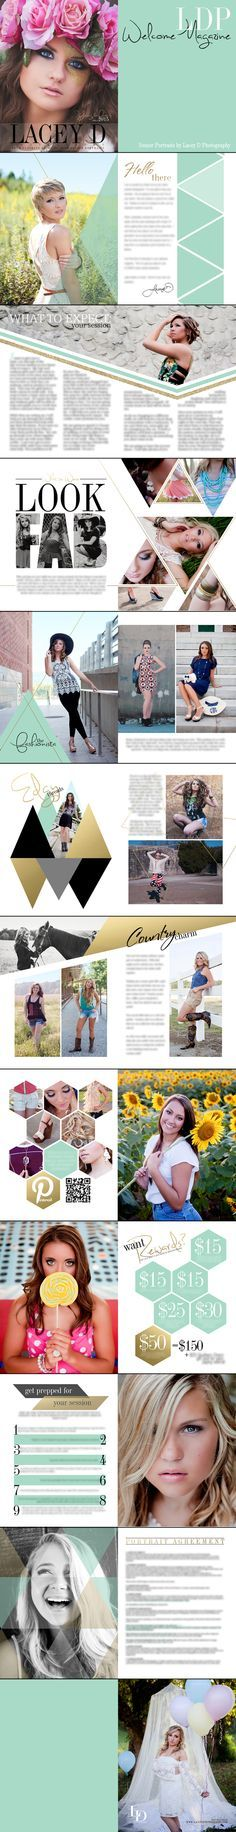 Lacey D Photography Welcome Magazine - Welcome Packet - Senior Portraits - Packaging for our fashion page??